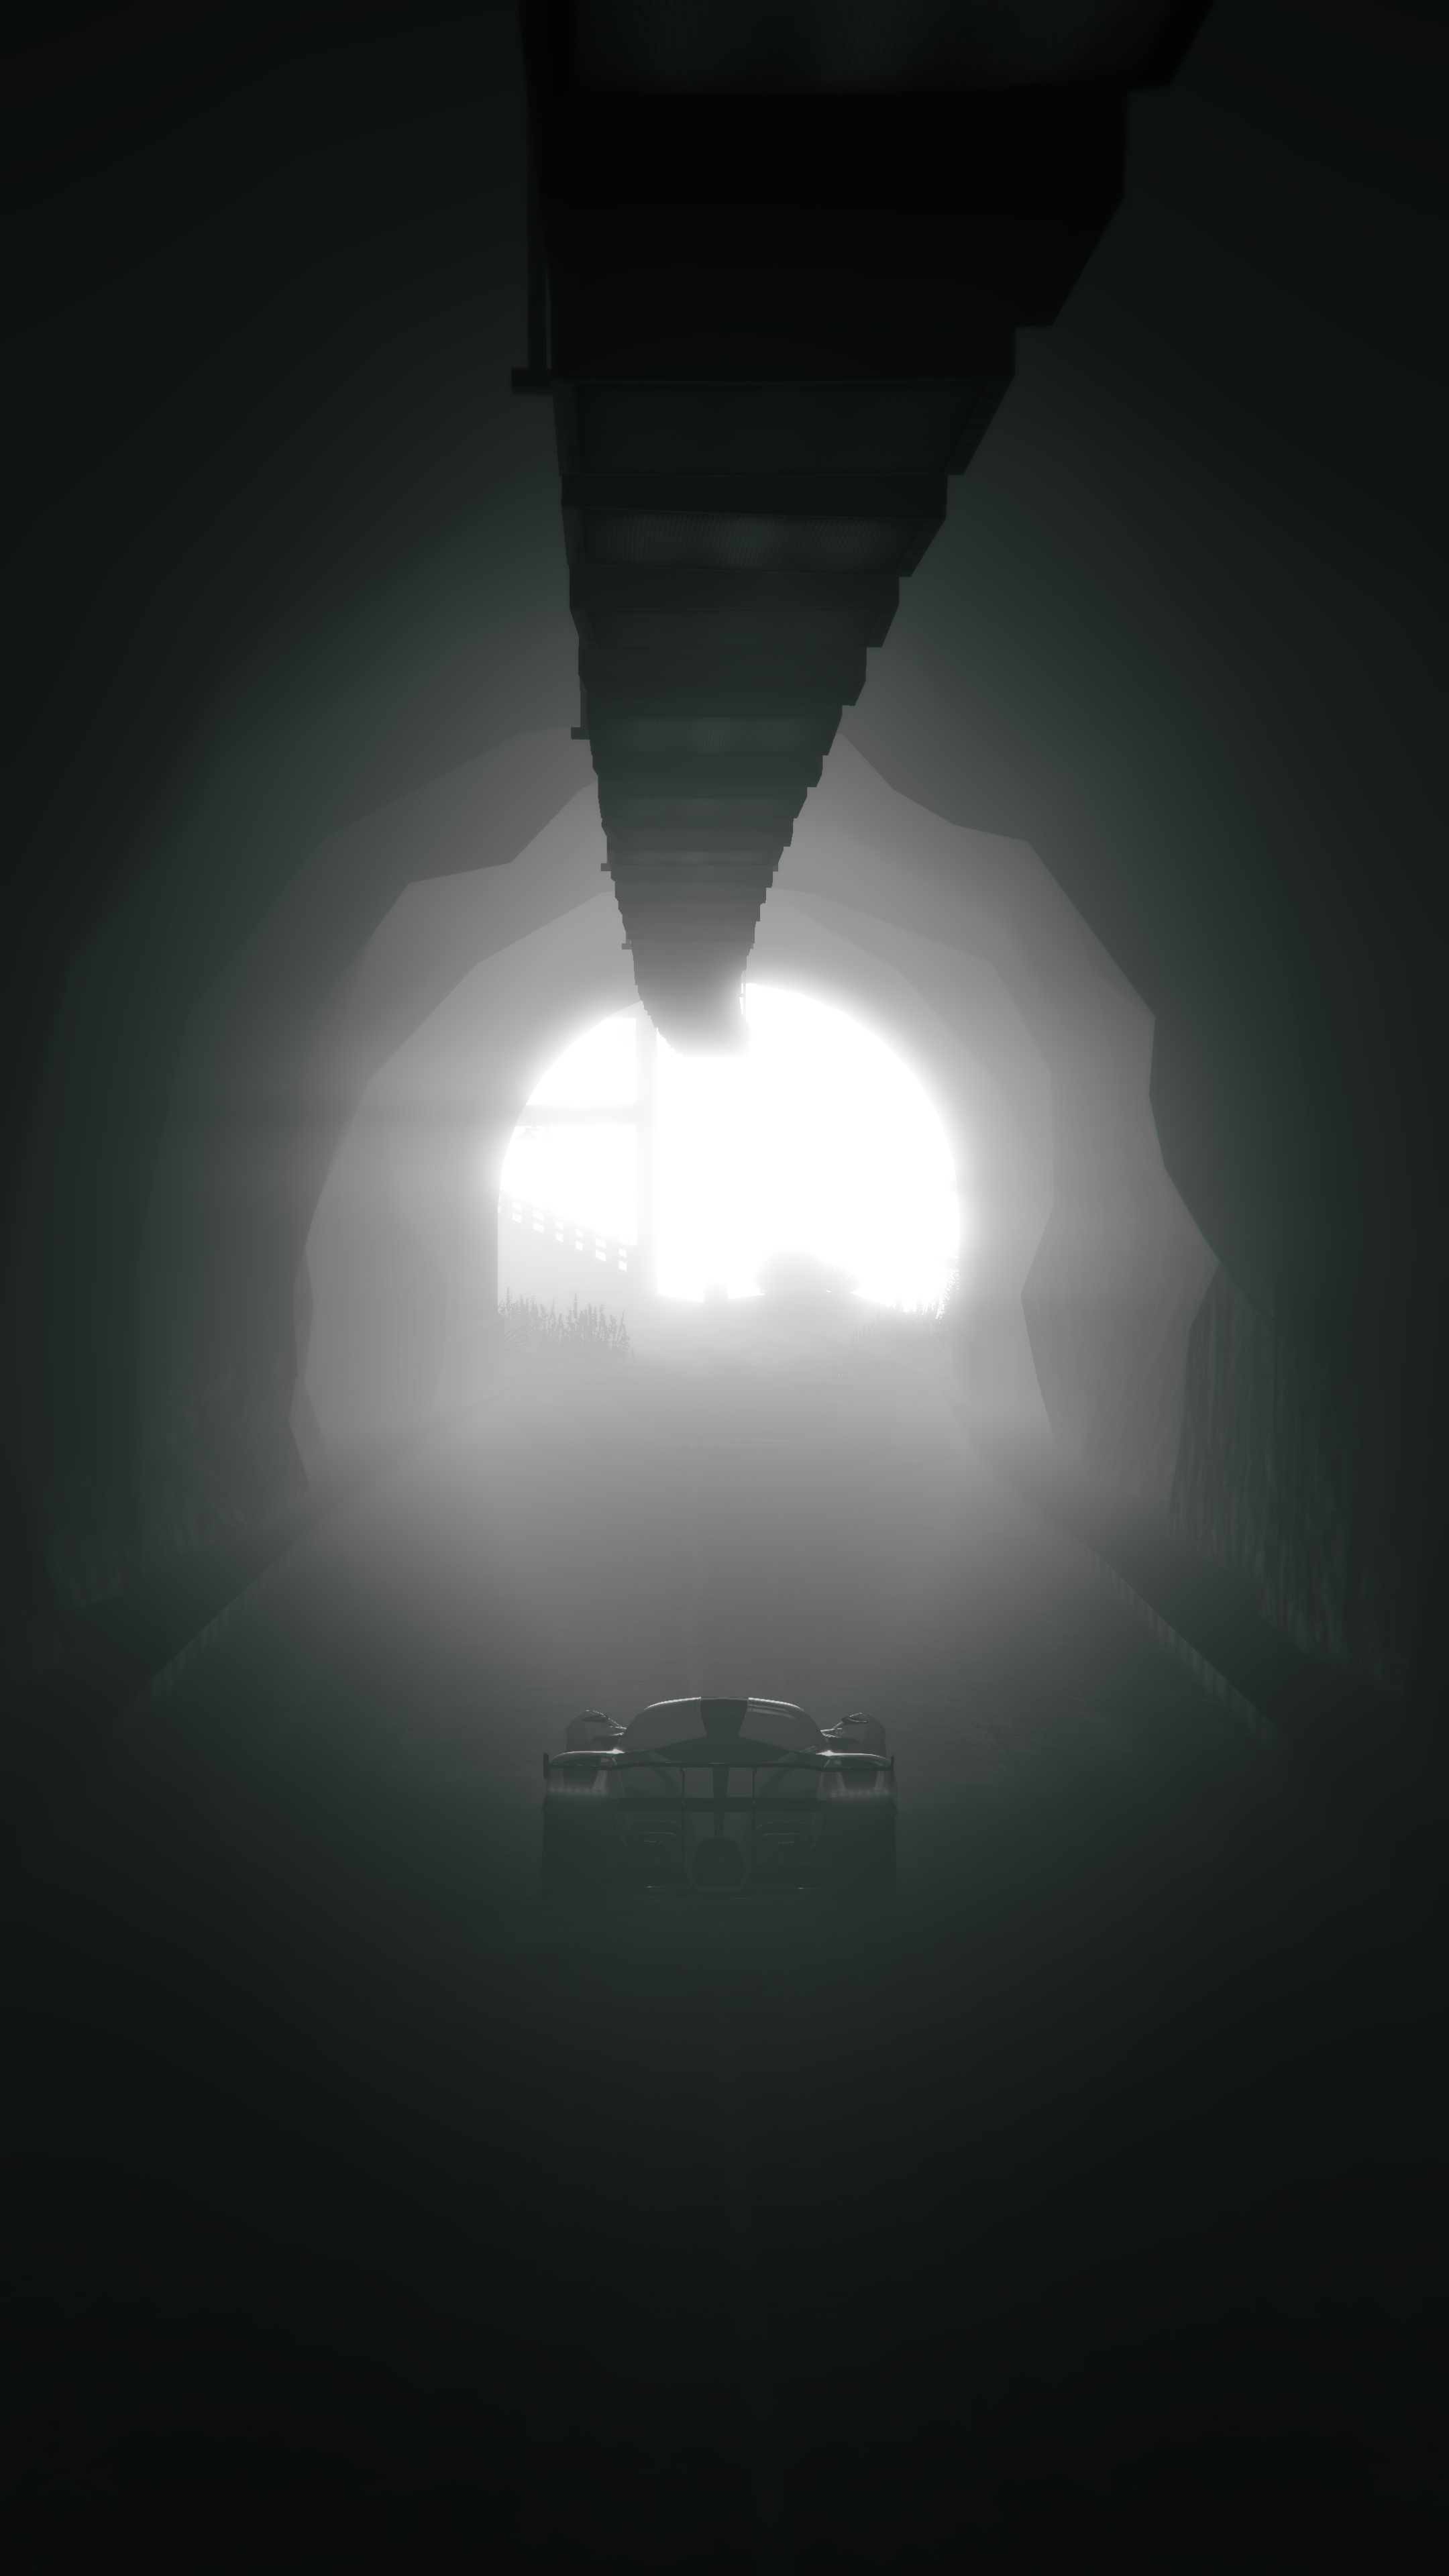 GTAV Tunnel [2160x3840] (With images) Wallpaper, Iphone